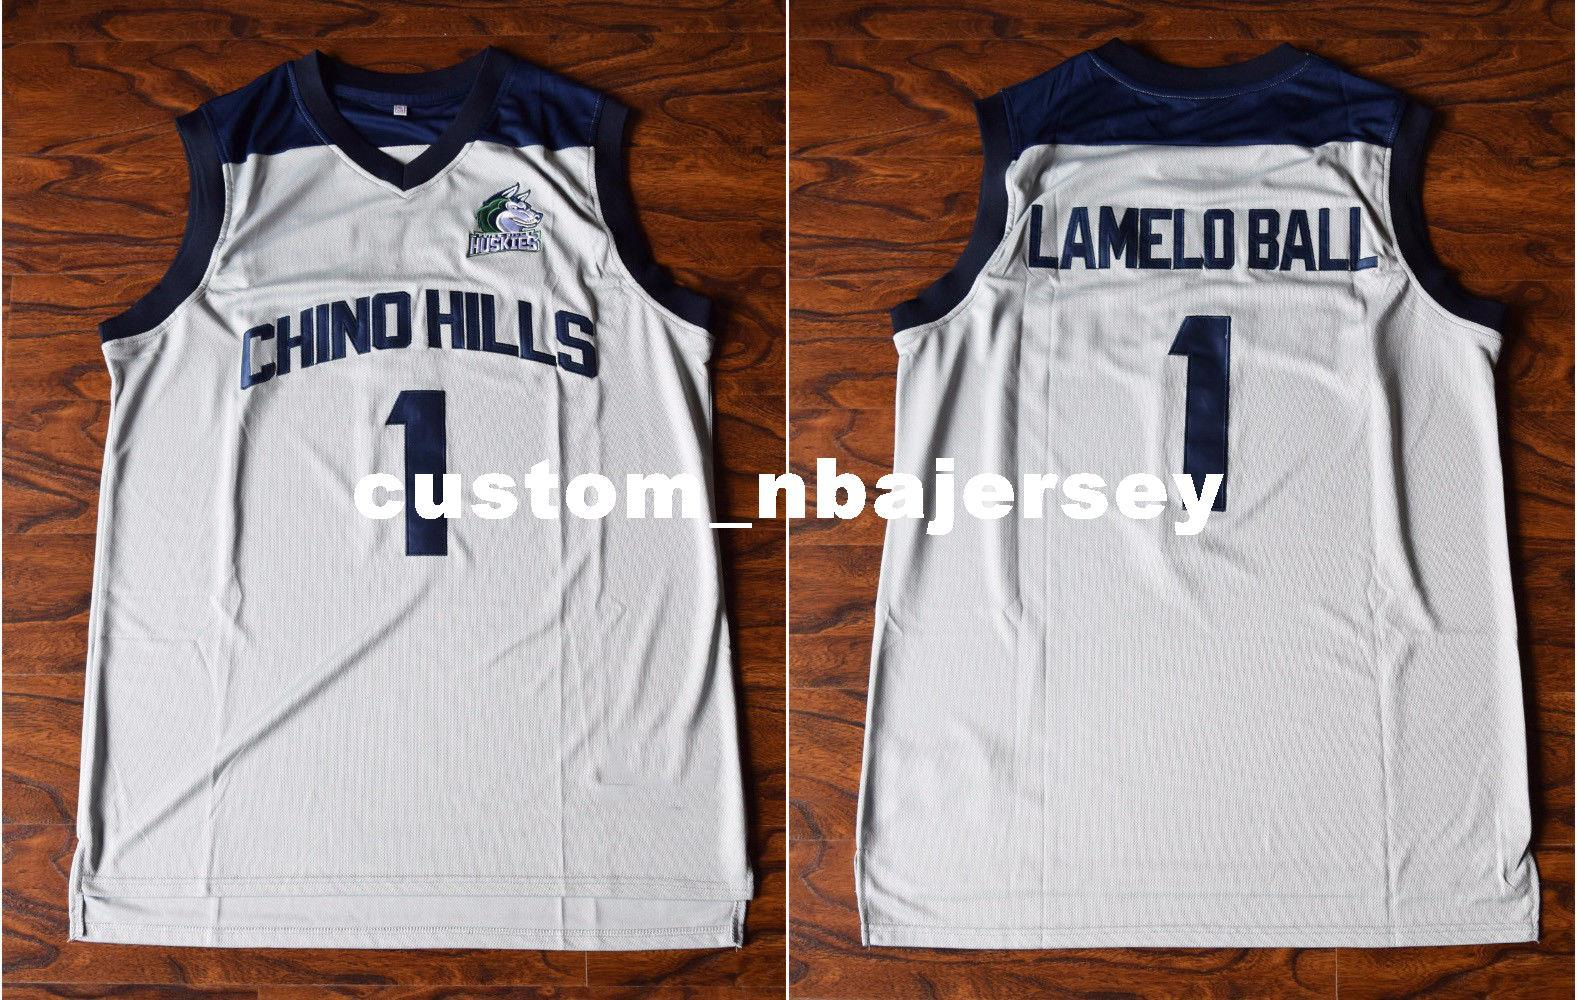 2019 Cheap Custom LaMelo Ball  1 Chino Hill Basketball Stitched Jersey High  School White Stitch Customize Any Number Name MEN WOMEN YOUTH XS 5XL From  ... e4edf57751